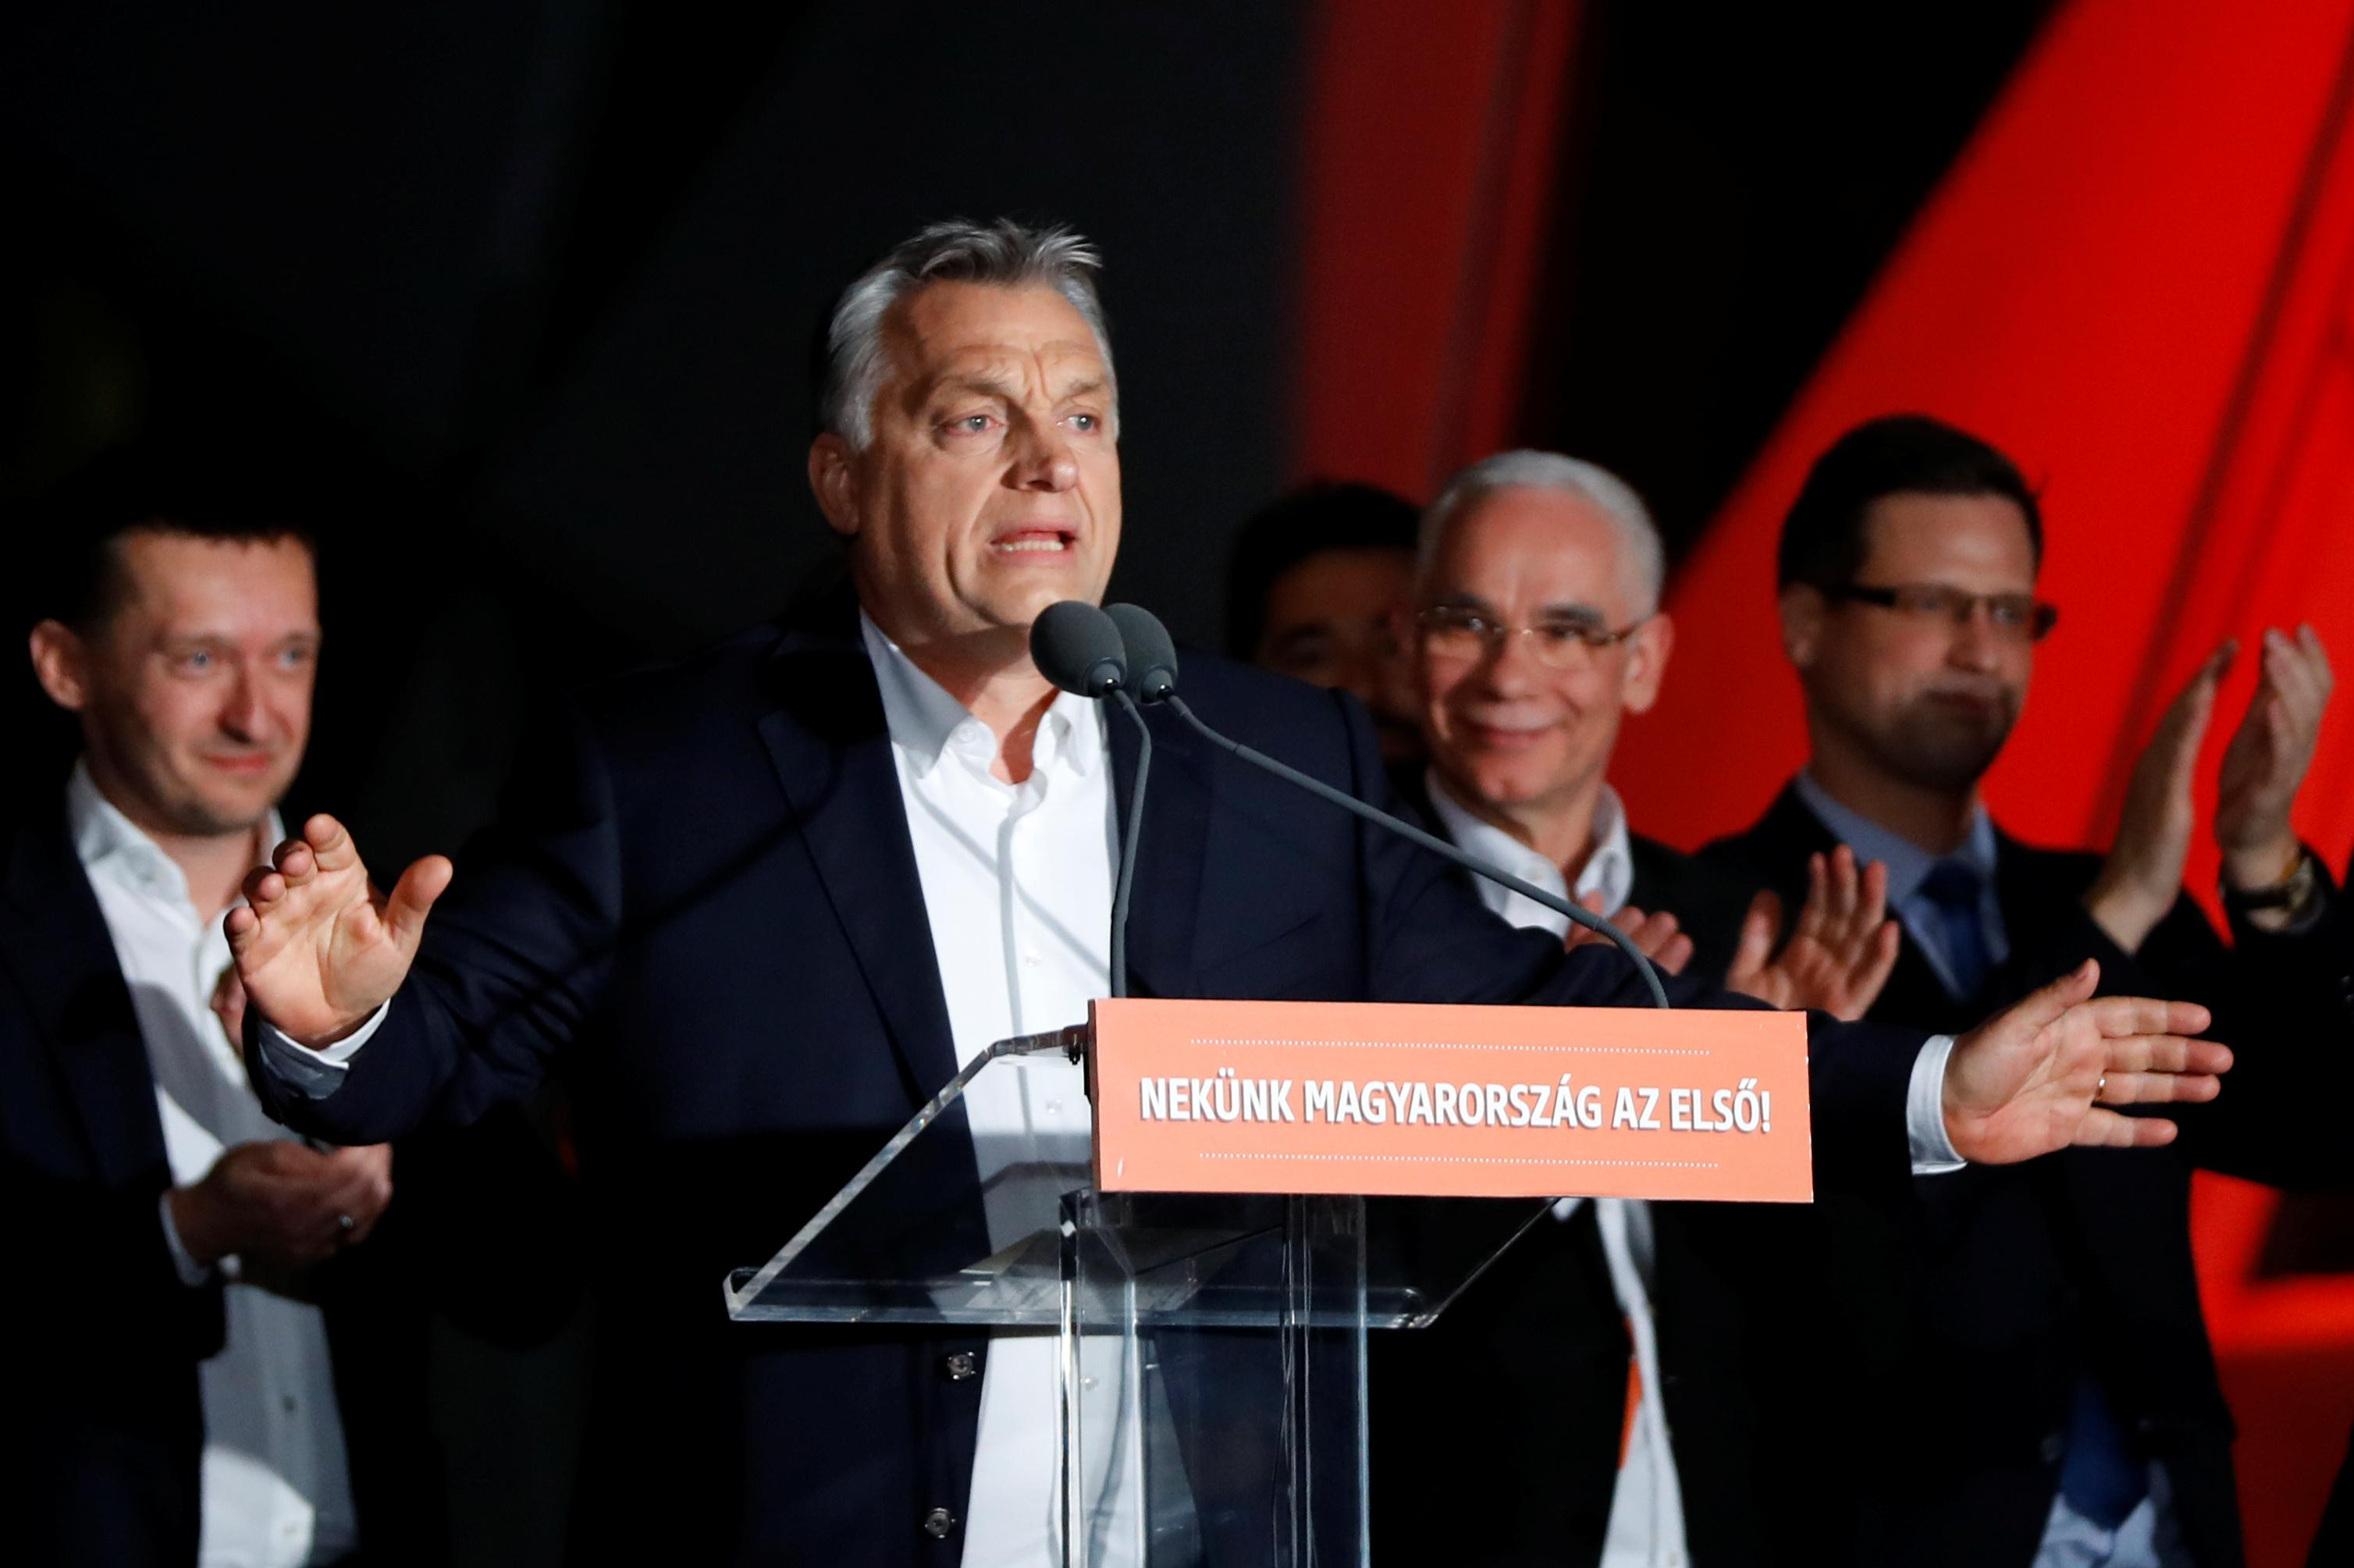 From liberal hero to right-wing icon, Orban's appeal trumps rivals